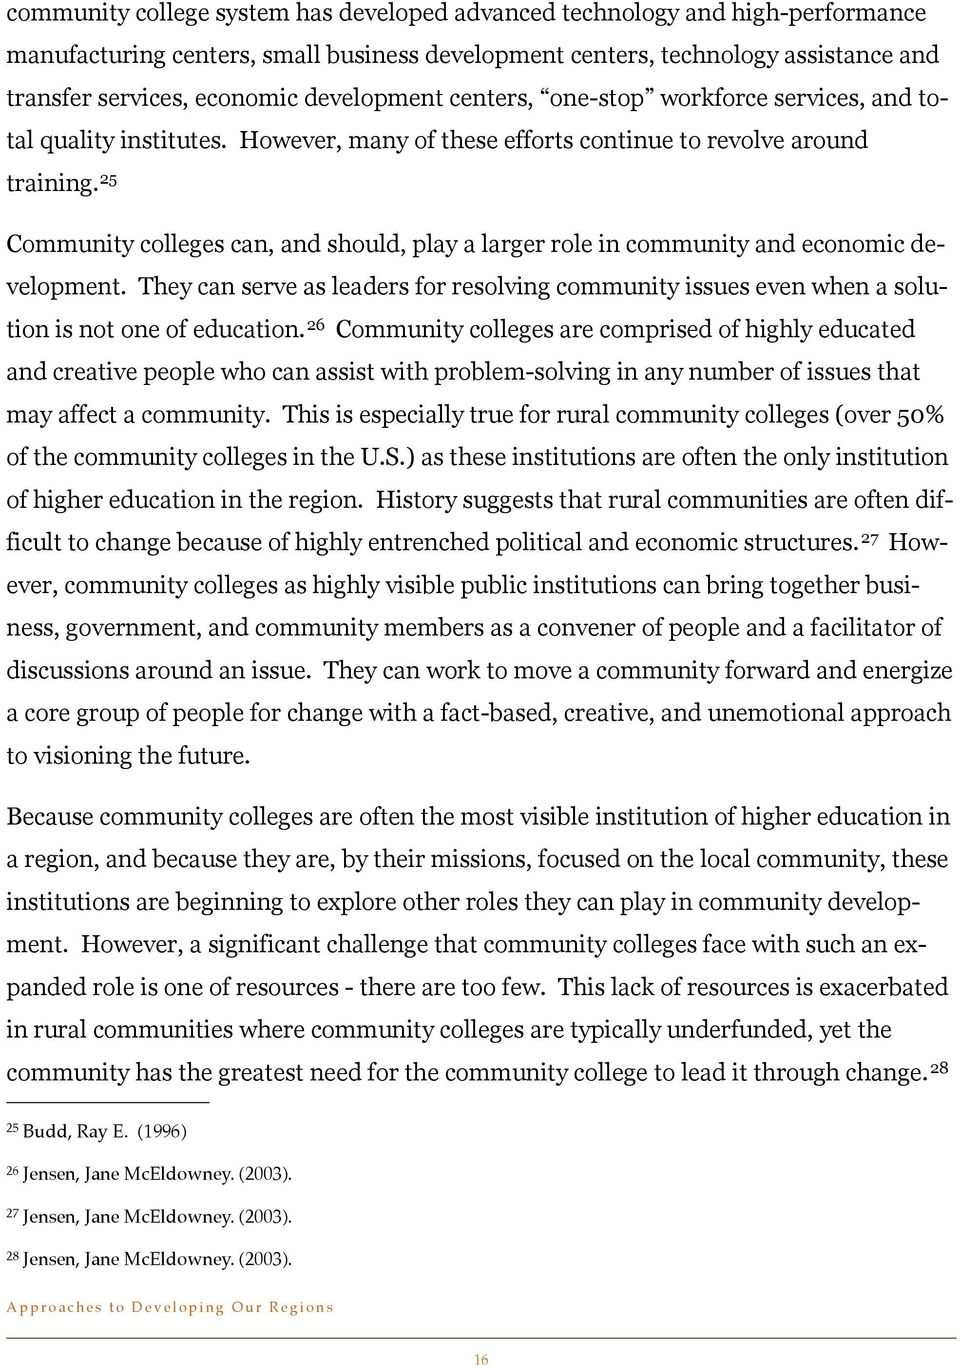 25 Community colleges can, and should, play a larger role in community and economic development. They can serve as leaders for resolving community issues even when a solution is not one of education.